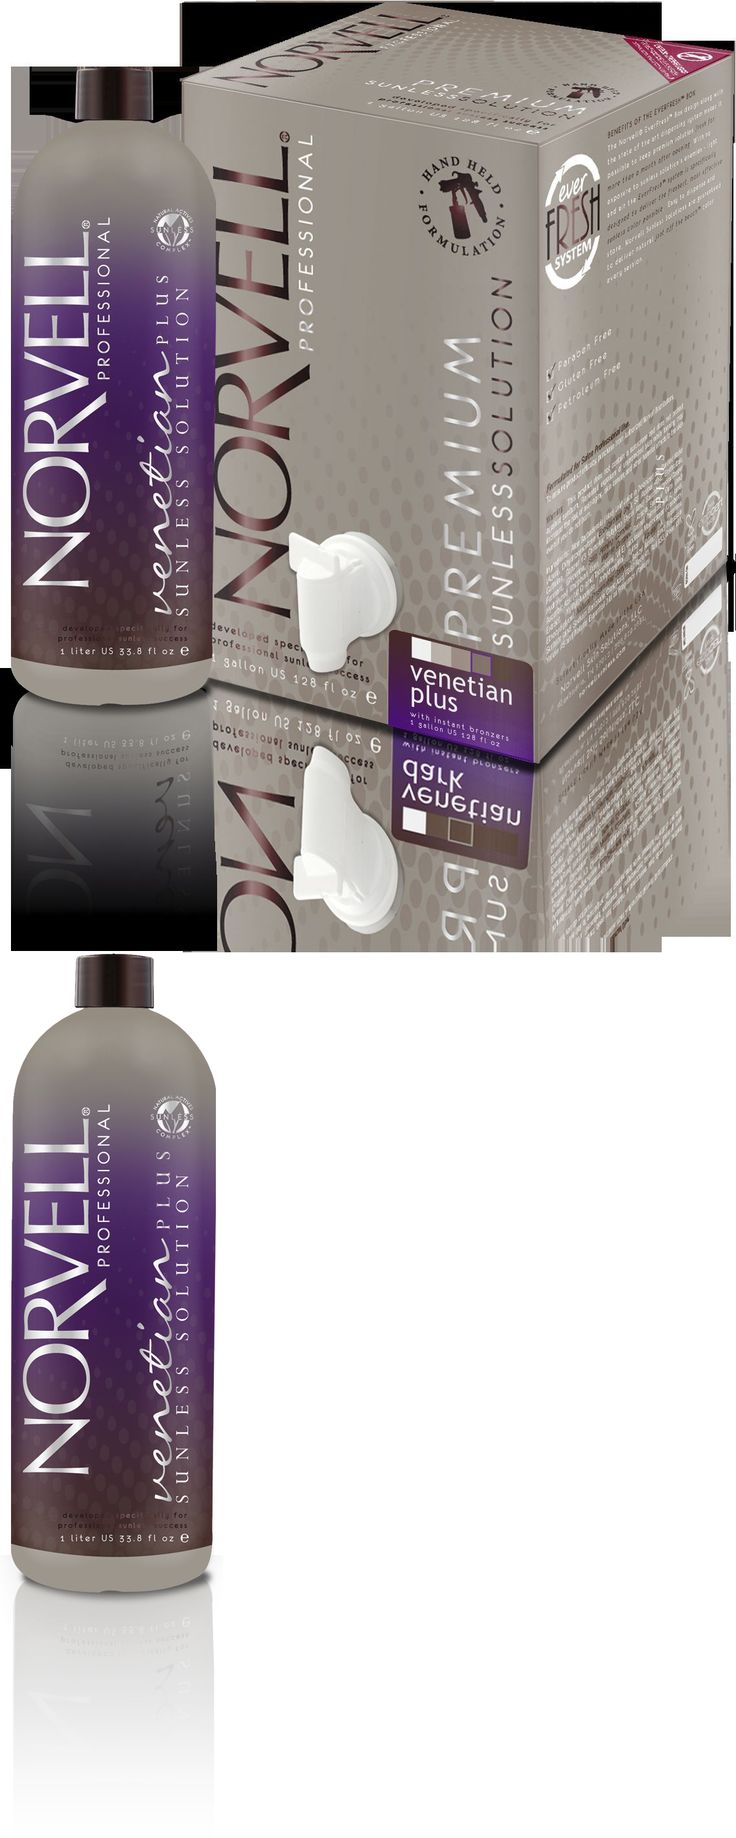 Sunless Tanning Products: Norvell Premium Spray Tanning Solution Venetian Plus Sunless Airbrush (34Oz) -> BUY IT NOW ONLY: $58 on eBay!